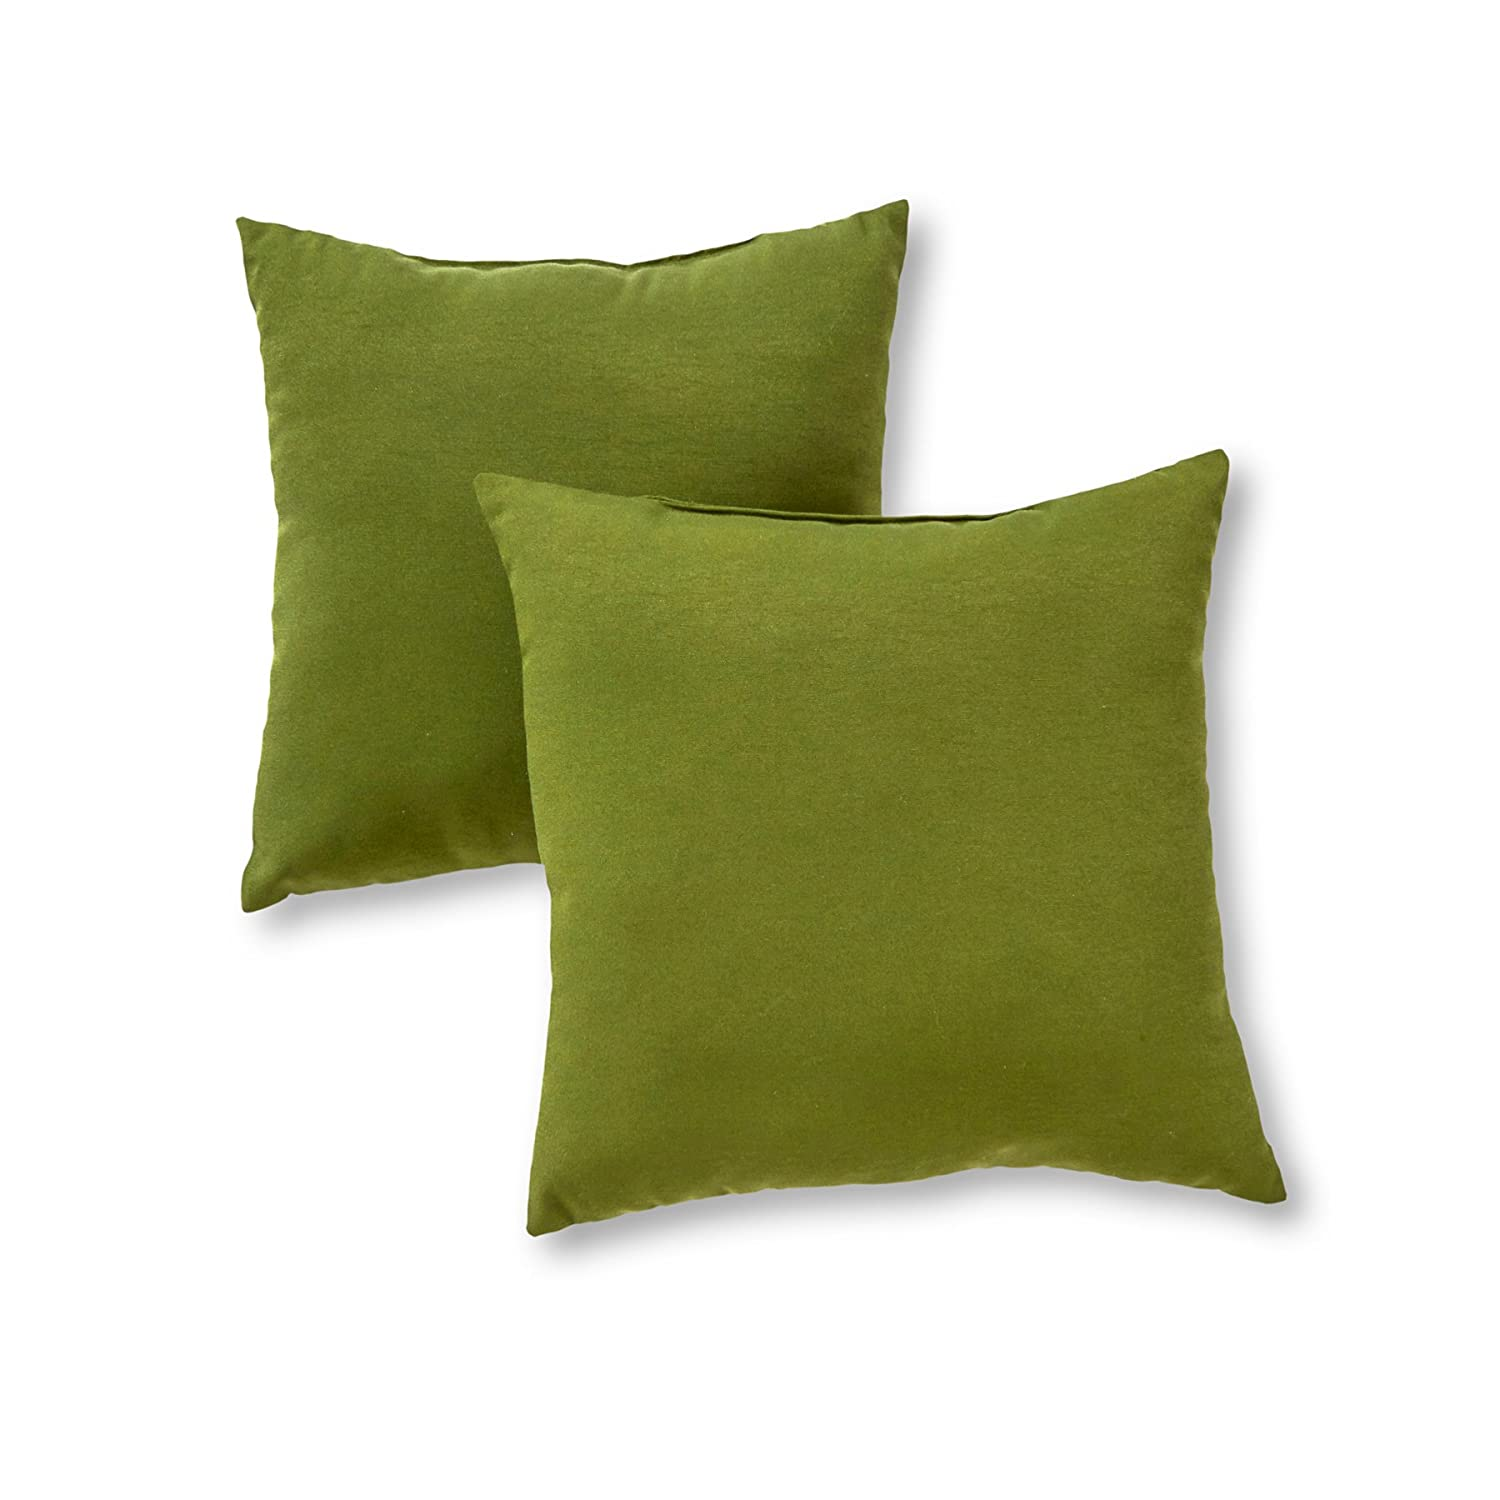 Greendale Home Fashions OC4803S2-Summerside Indoor/Outdoor Accent Pillows, Summerside Green, Set of 2